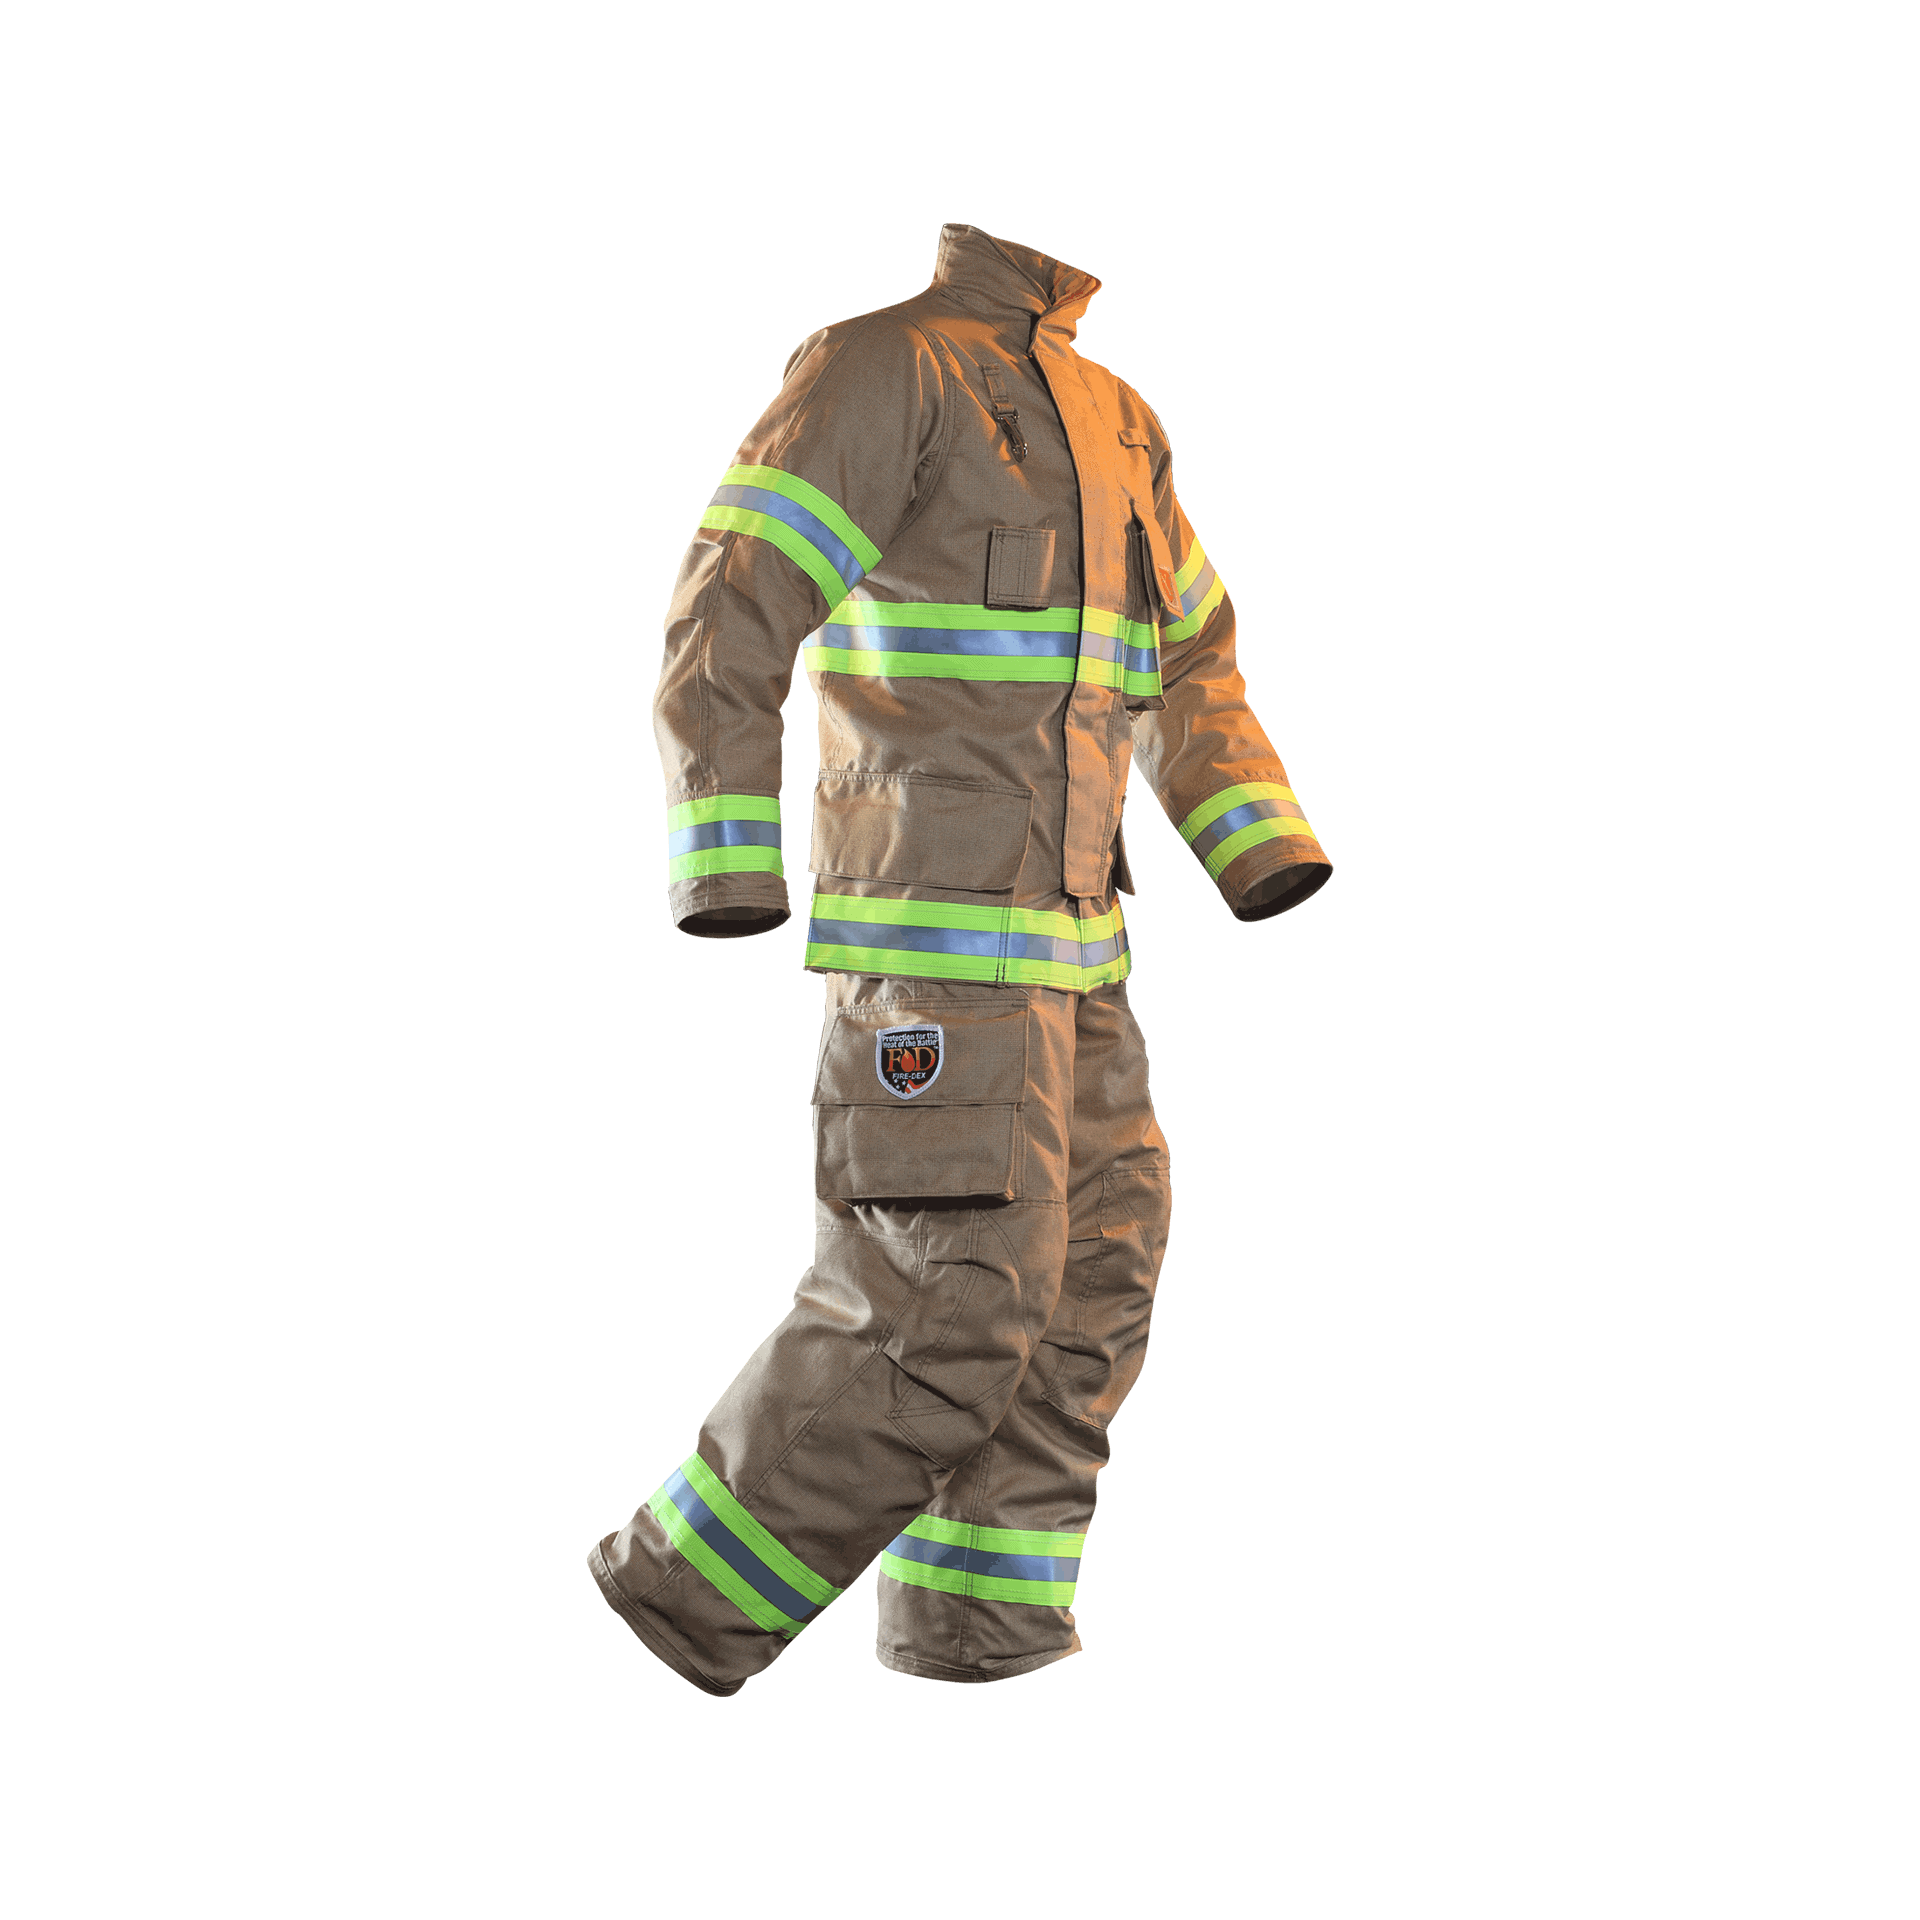 FXR Turnout Gear Full Side View